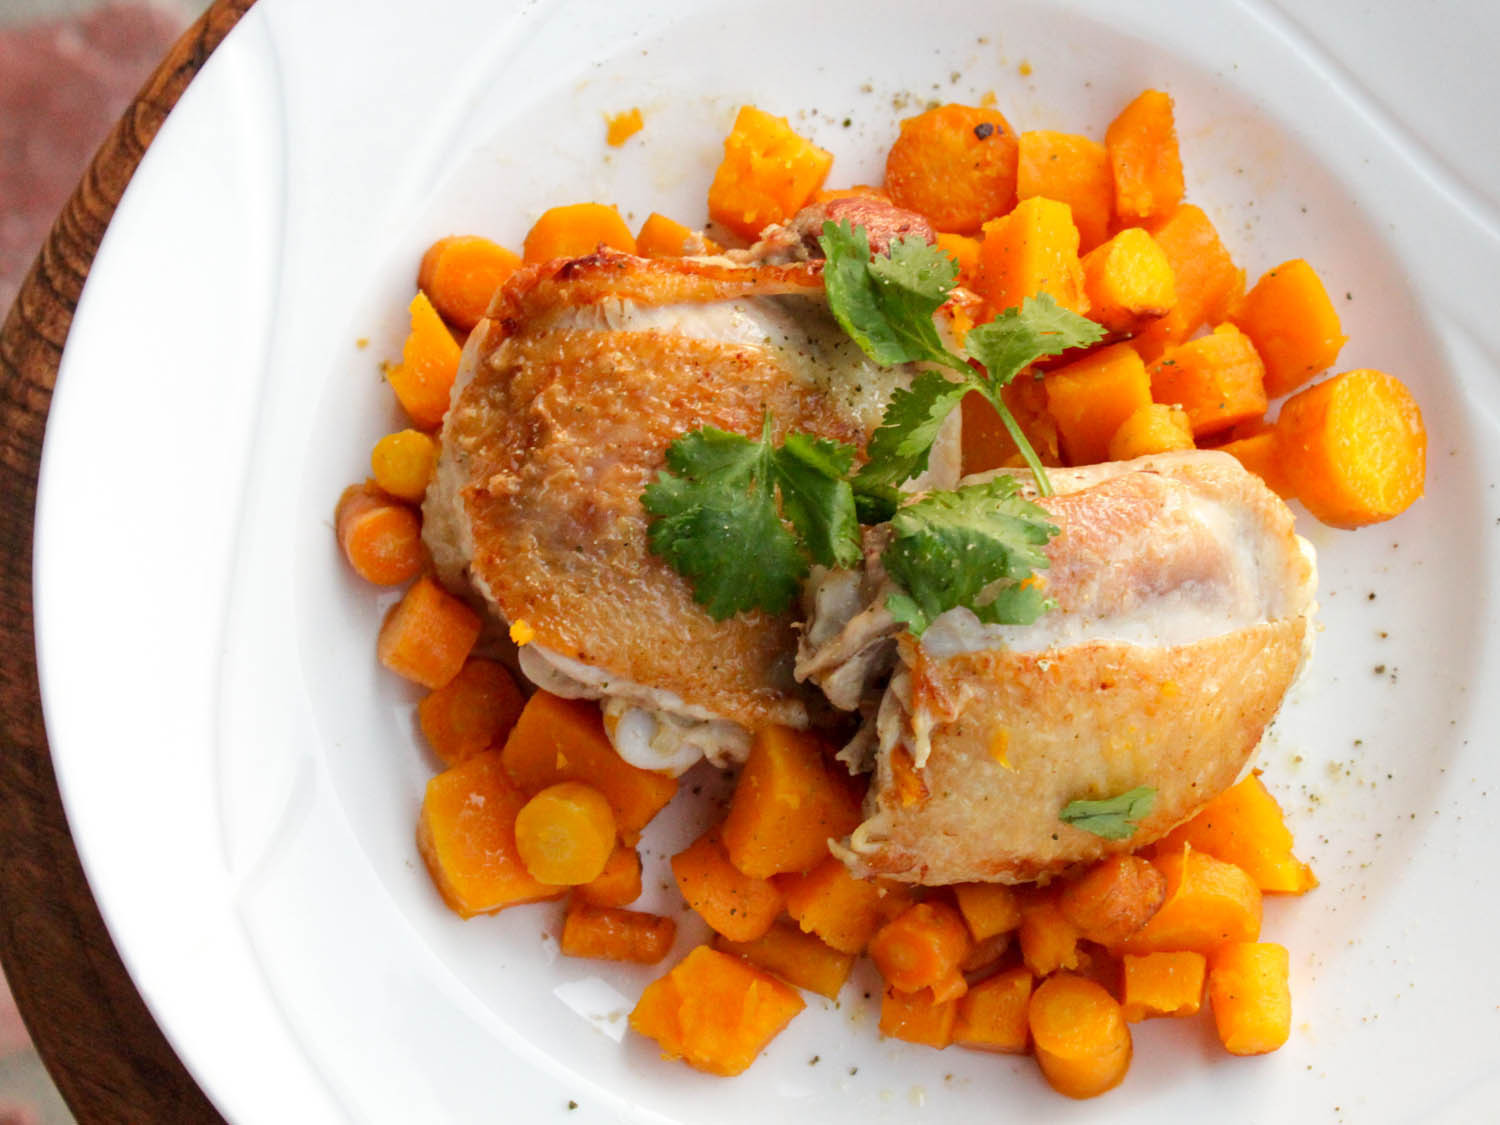 Quick Chicken Dinners  17 Chicken Dinners to Whip Up in 30 Minutes or Less